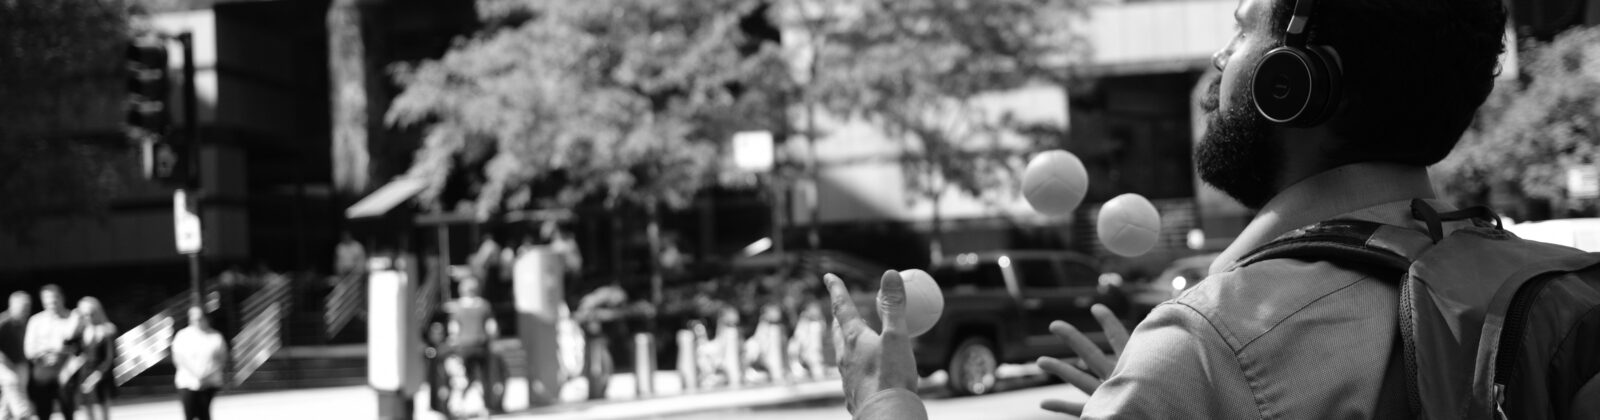 A person juggling tennis balls